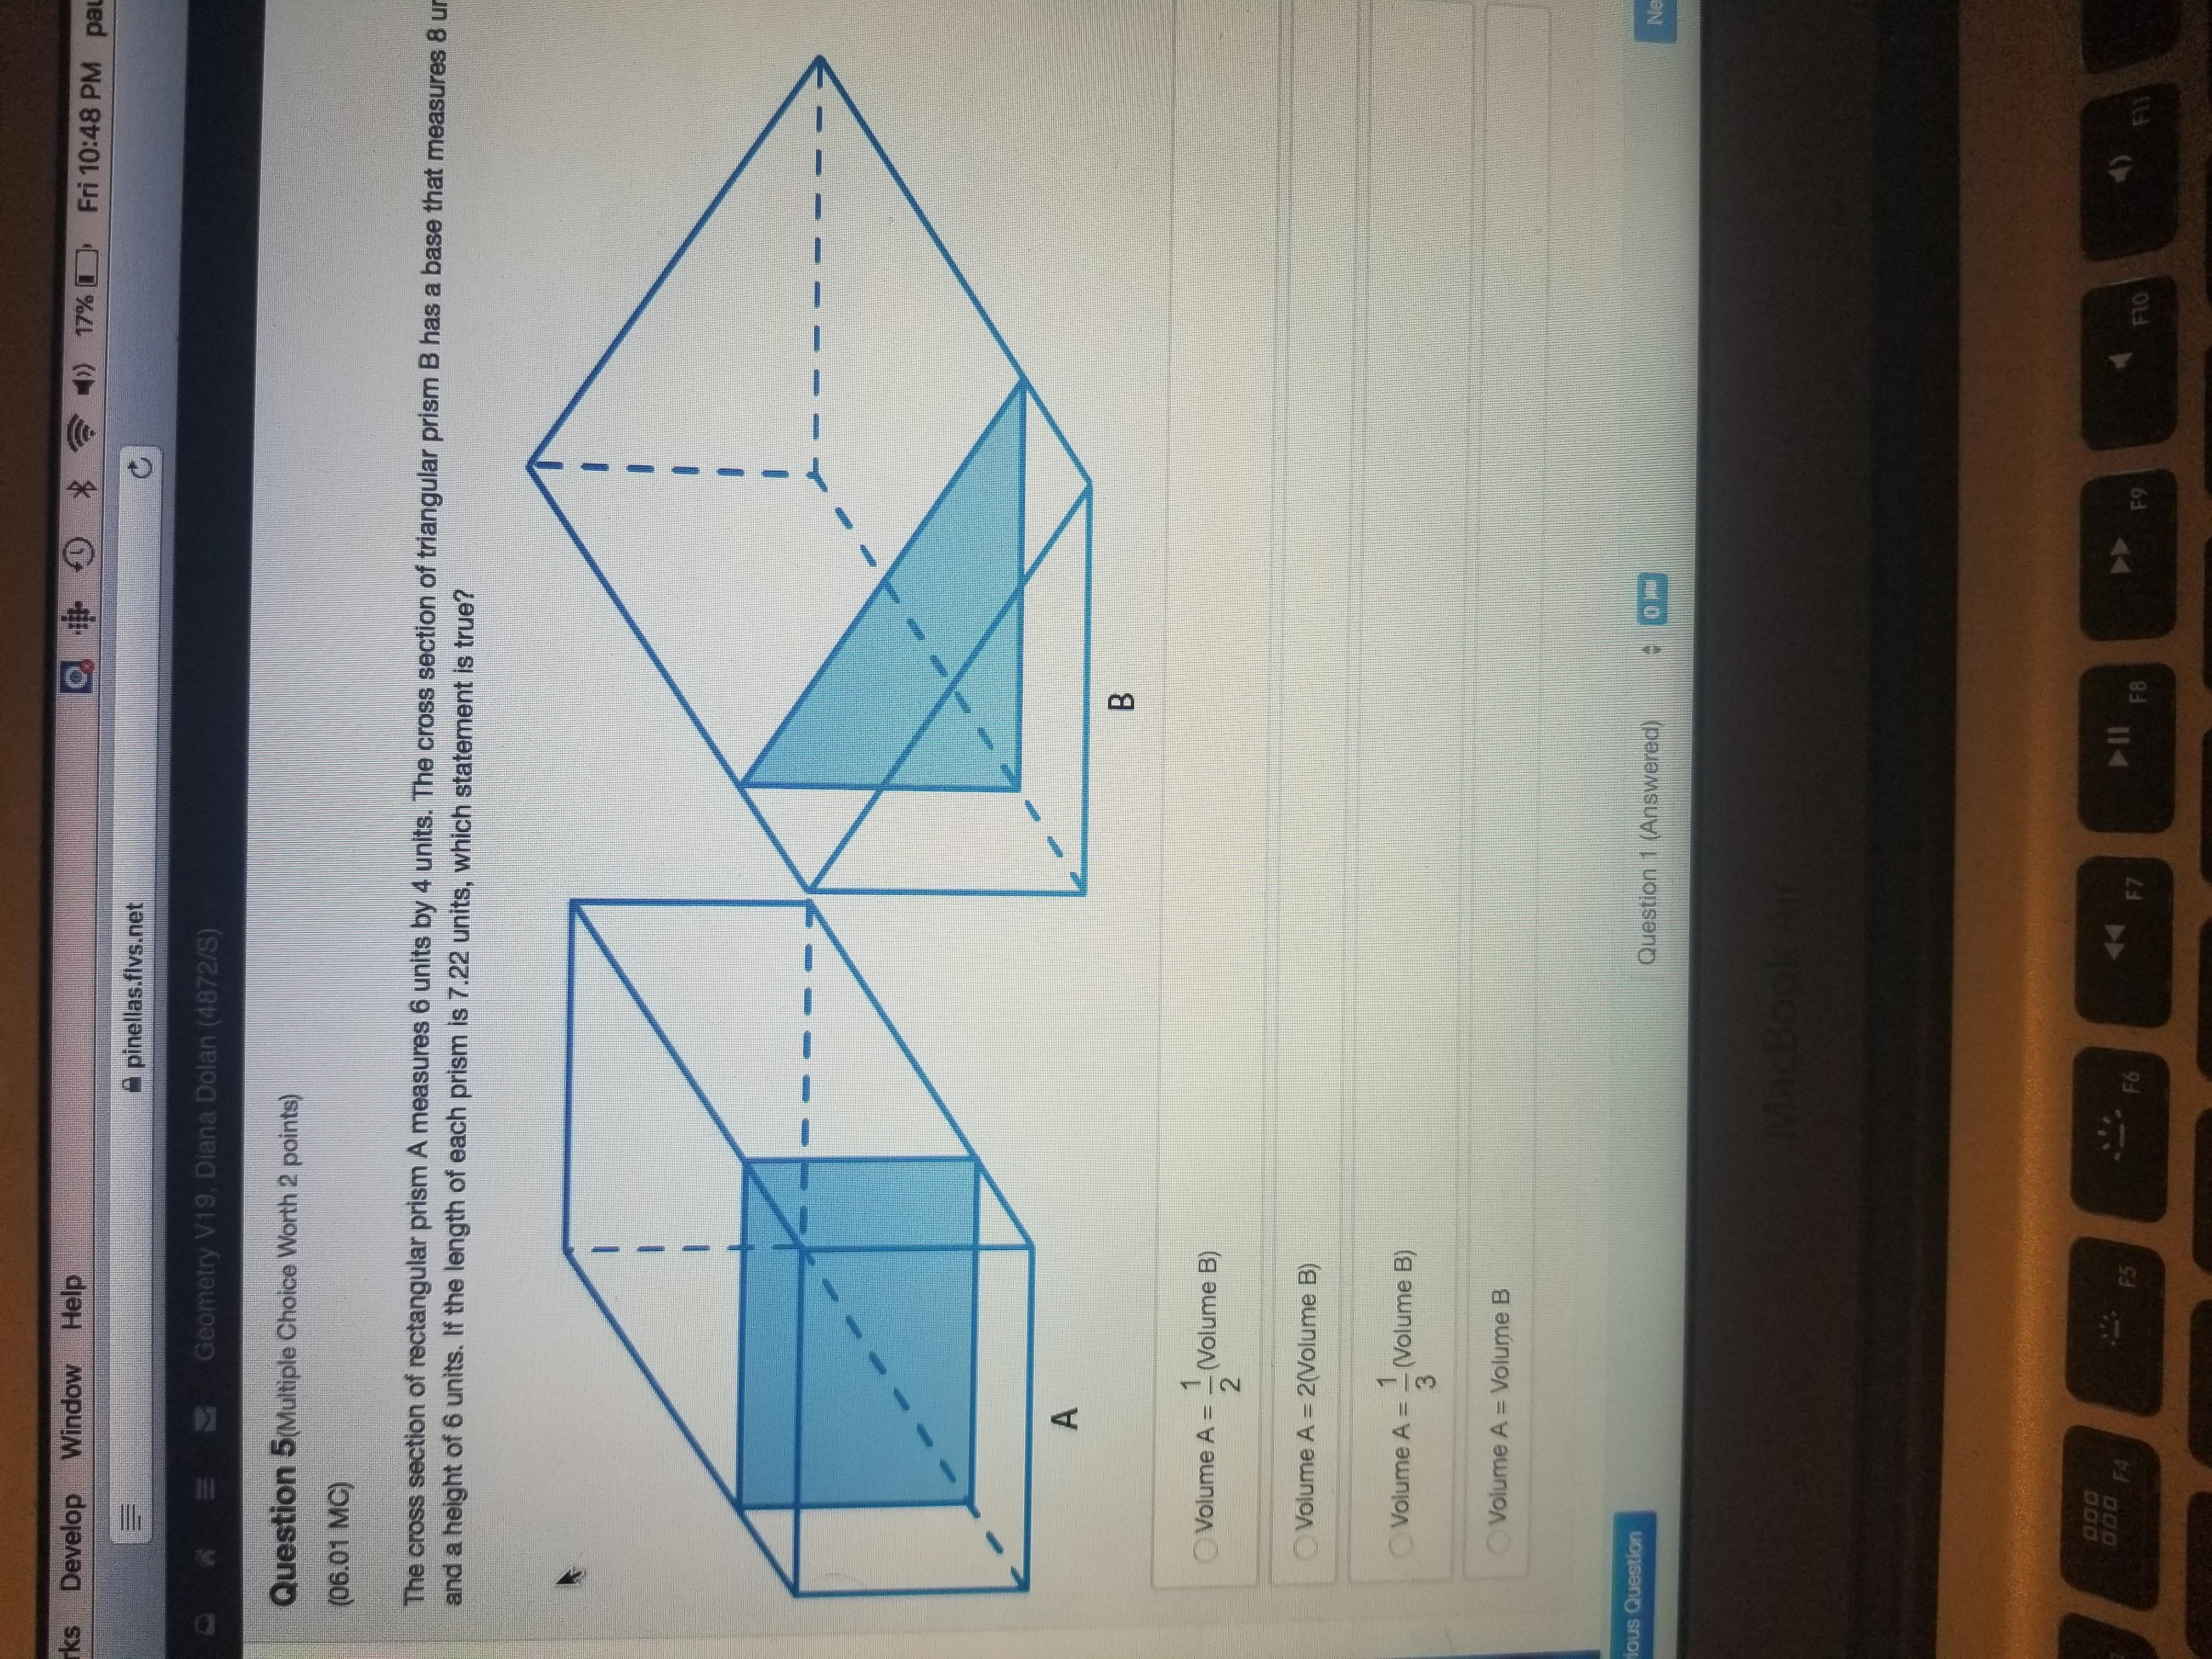 The Cross Section Of Rectangular Prism A Measures 3 Units